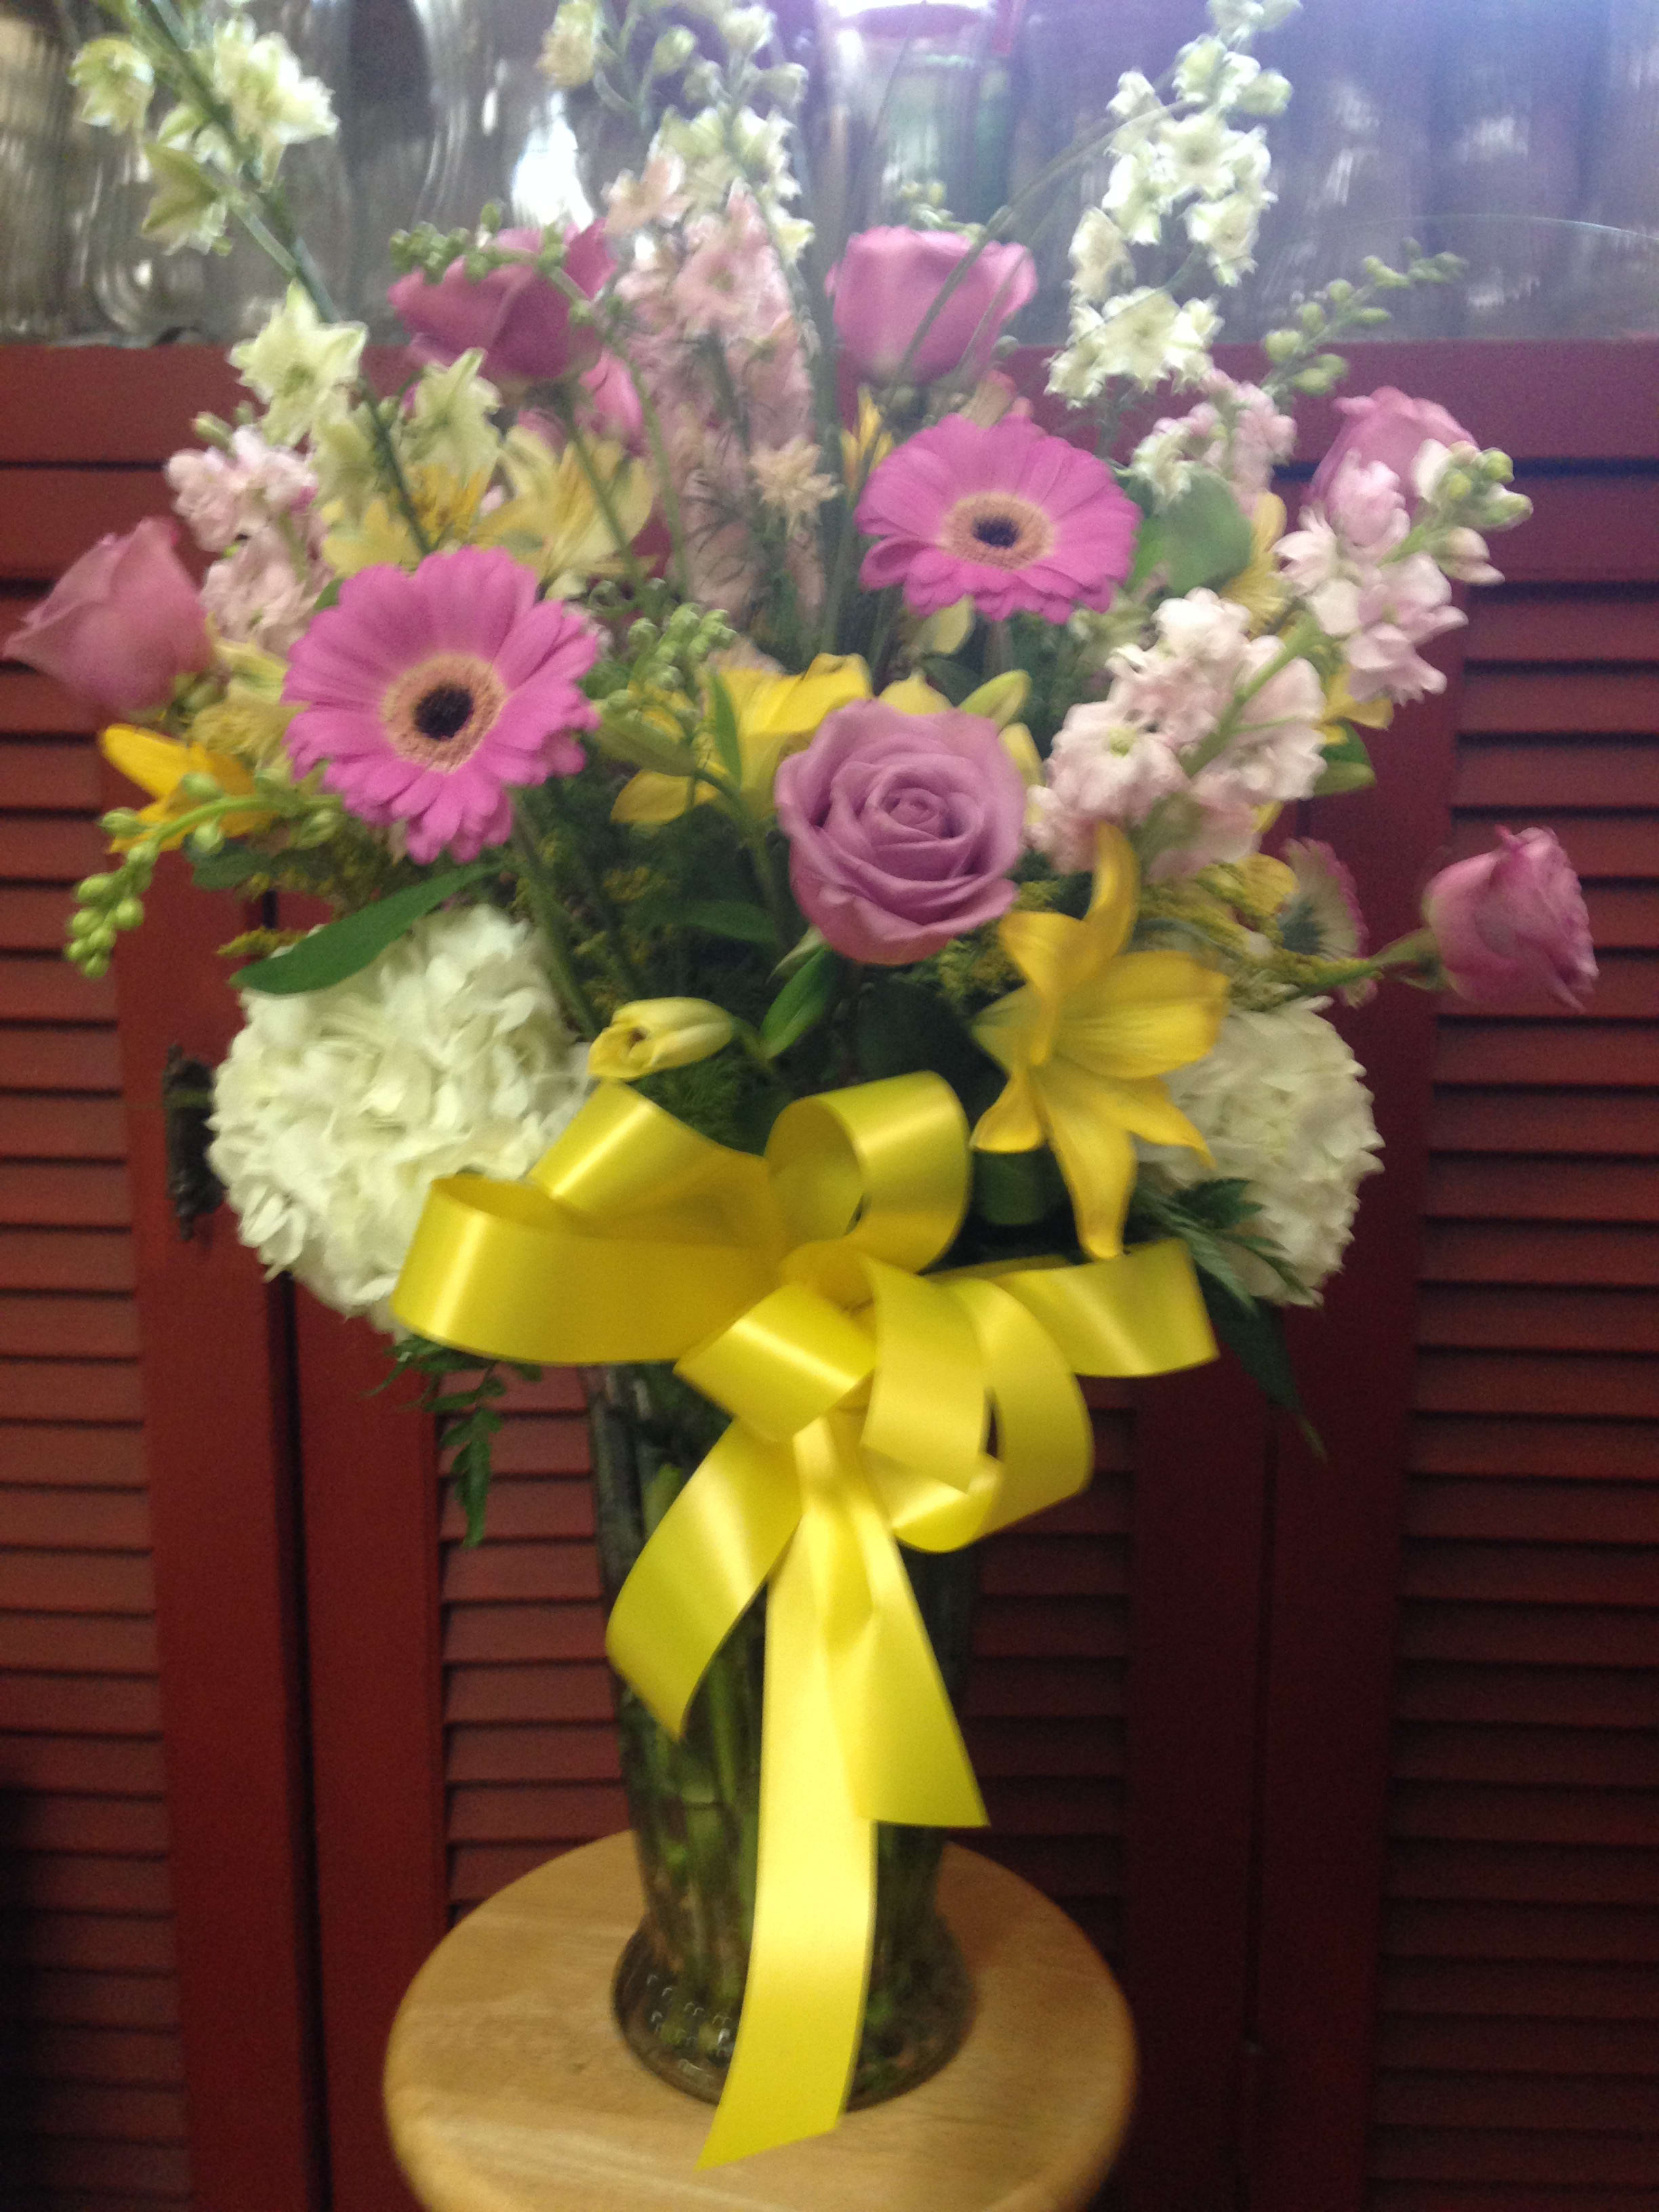 Snap dragon, roses, gerbera daisies, and other mixed flowers